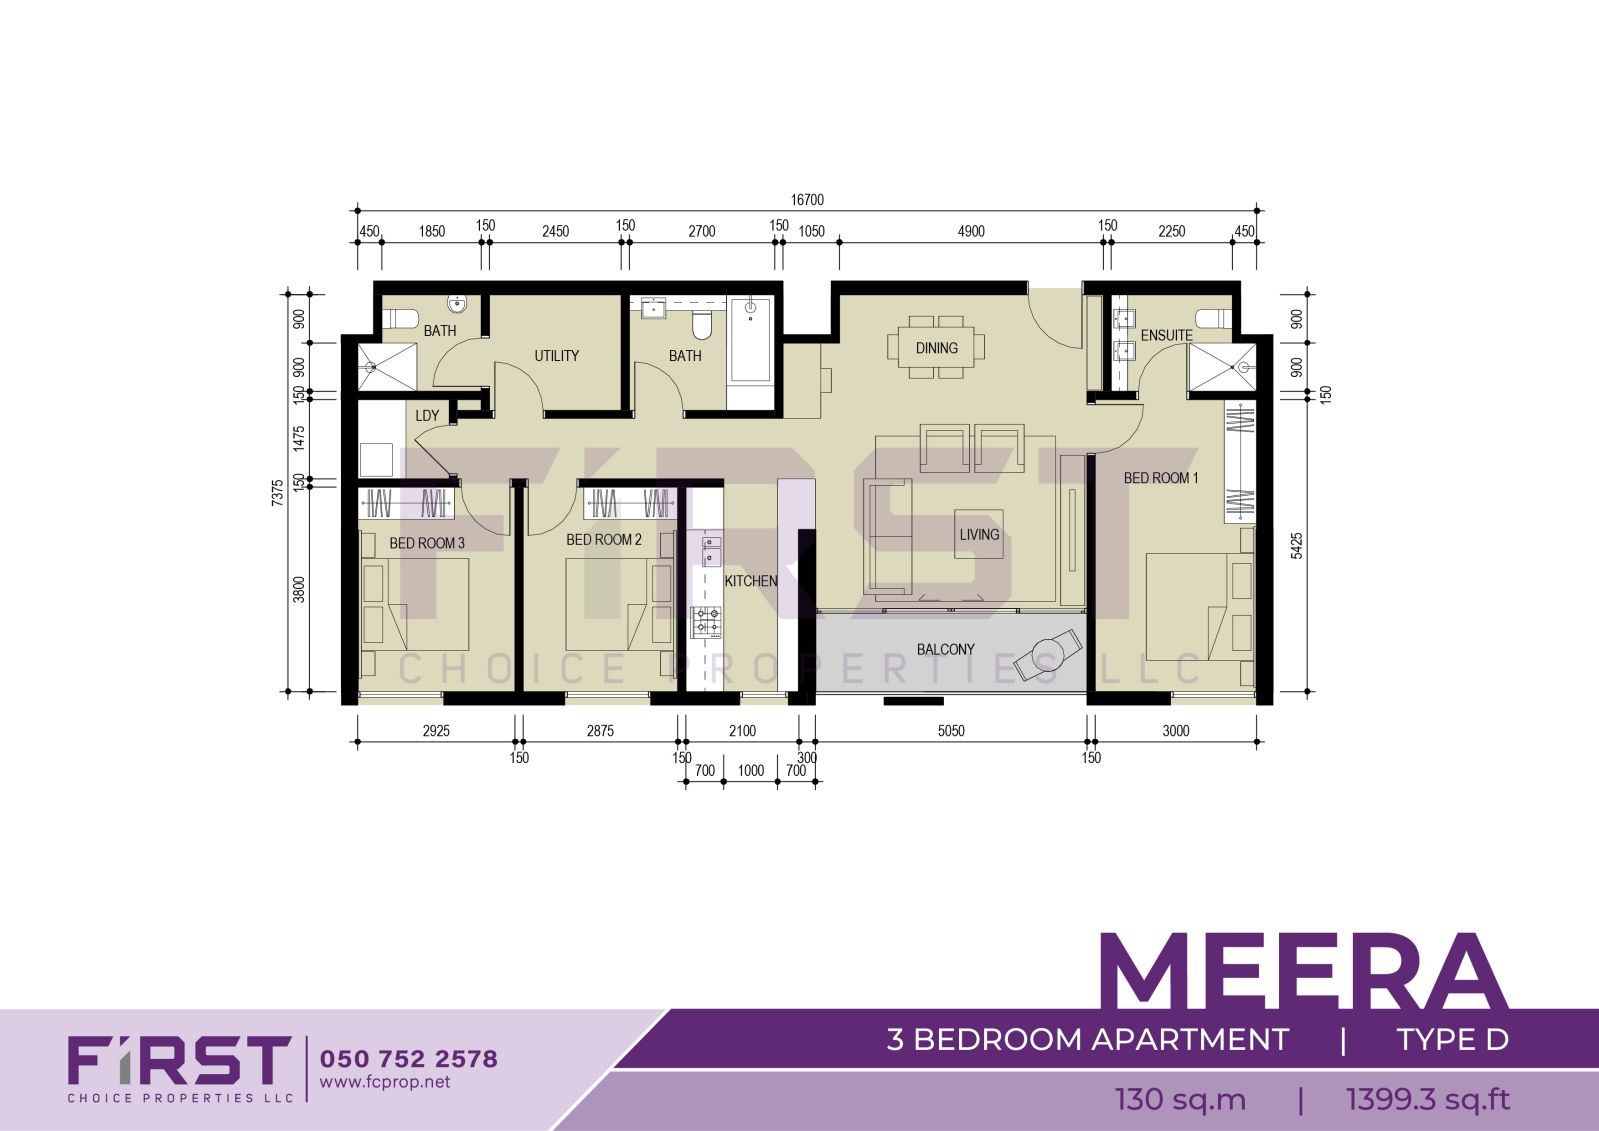 Floor Plan of 3 Bedroom Apartment Type D in Meera Shams Al Reem Island Abu Dhabi UAE 130 sq.m 1399.3 sq.ft.jpg